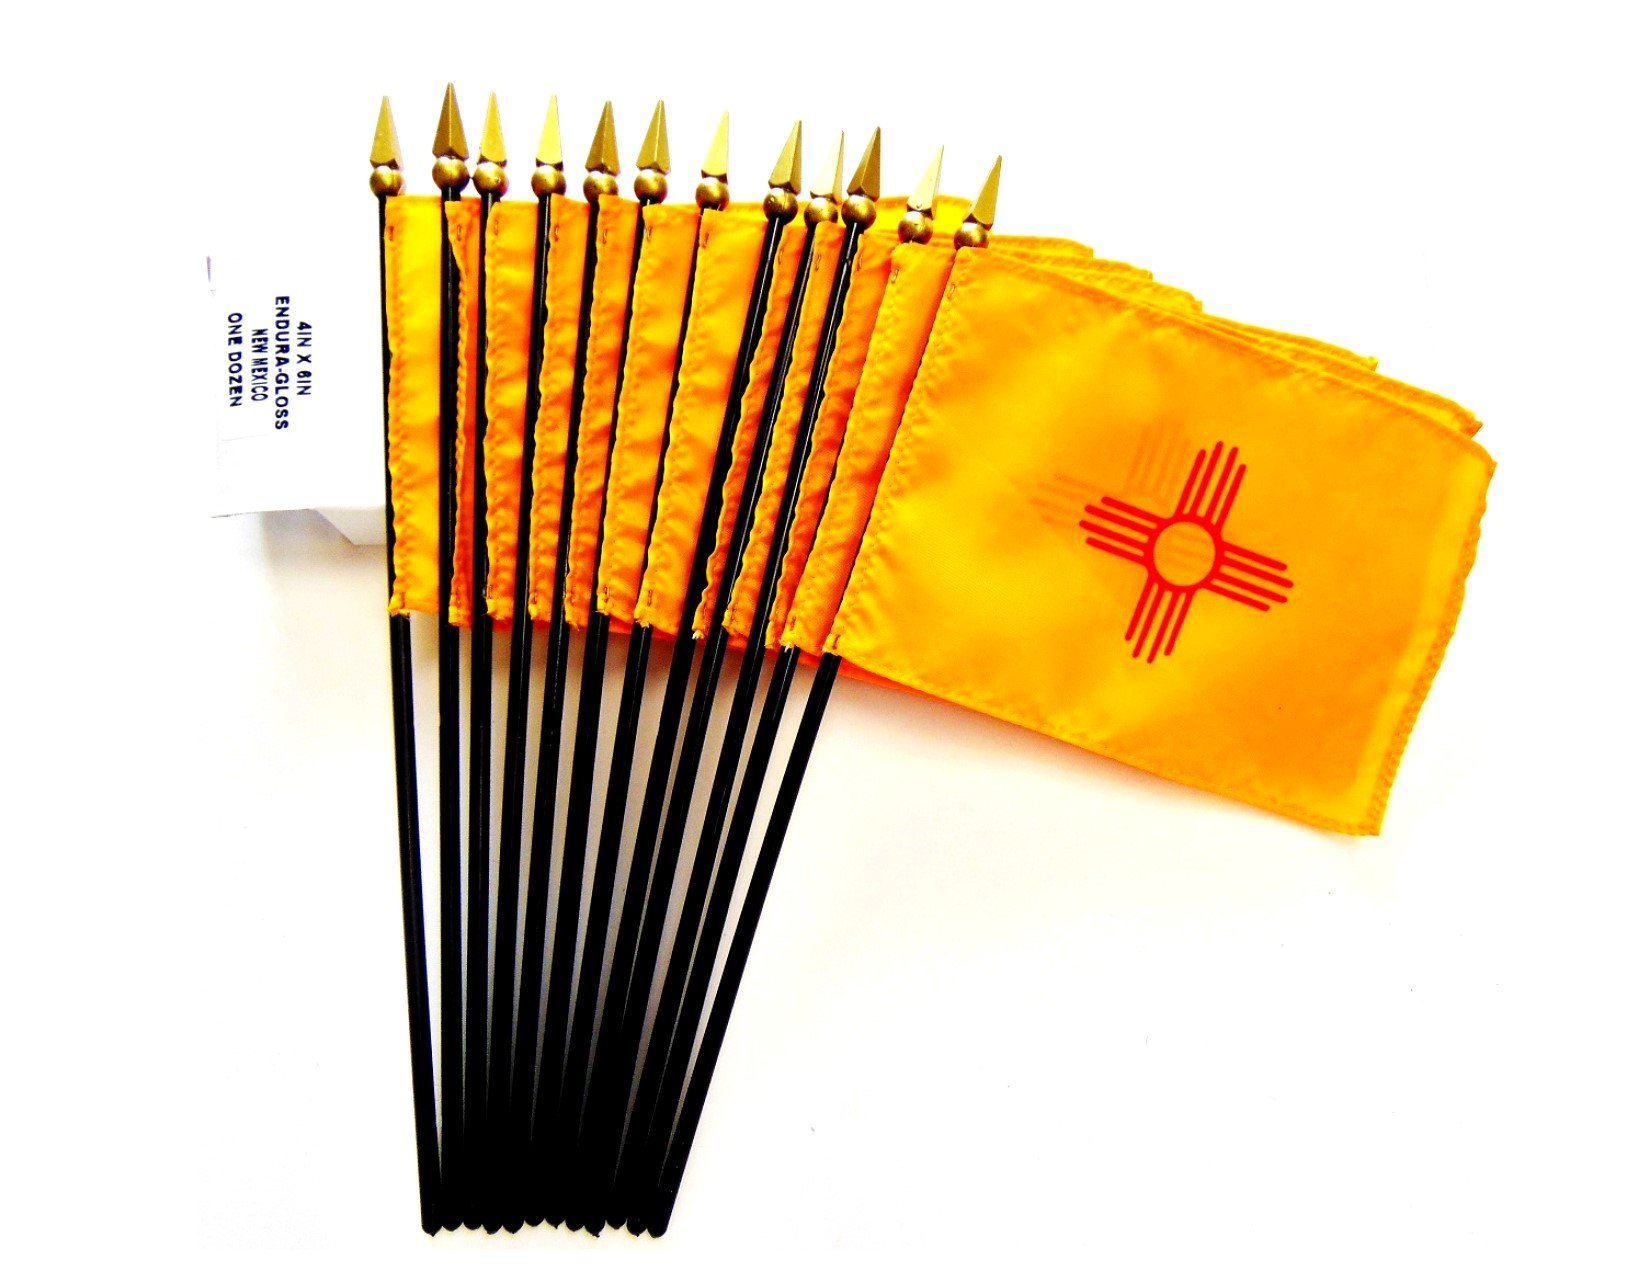 MADE IN USA!! Box of 12 New Mexico 4''x6'' Miniature Desk & Table Flags; 12 American Made Small Mini New Mexico State Flags in a Custom Made Cardboard Box Specifically Made for These Flags